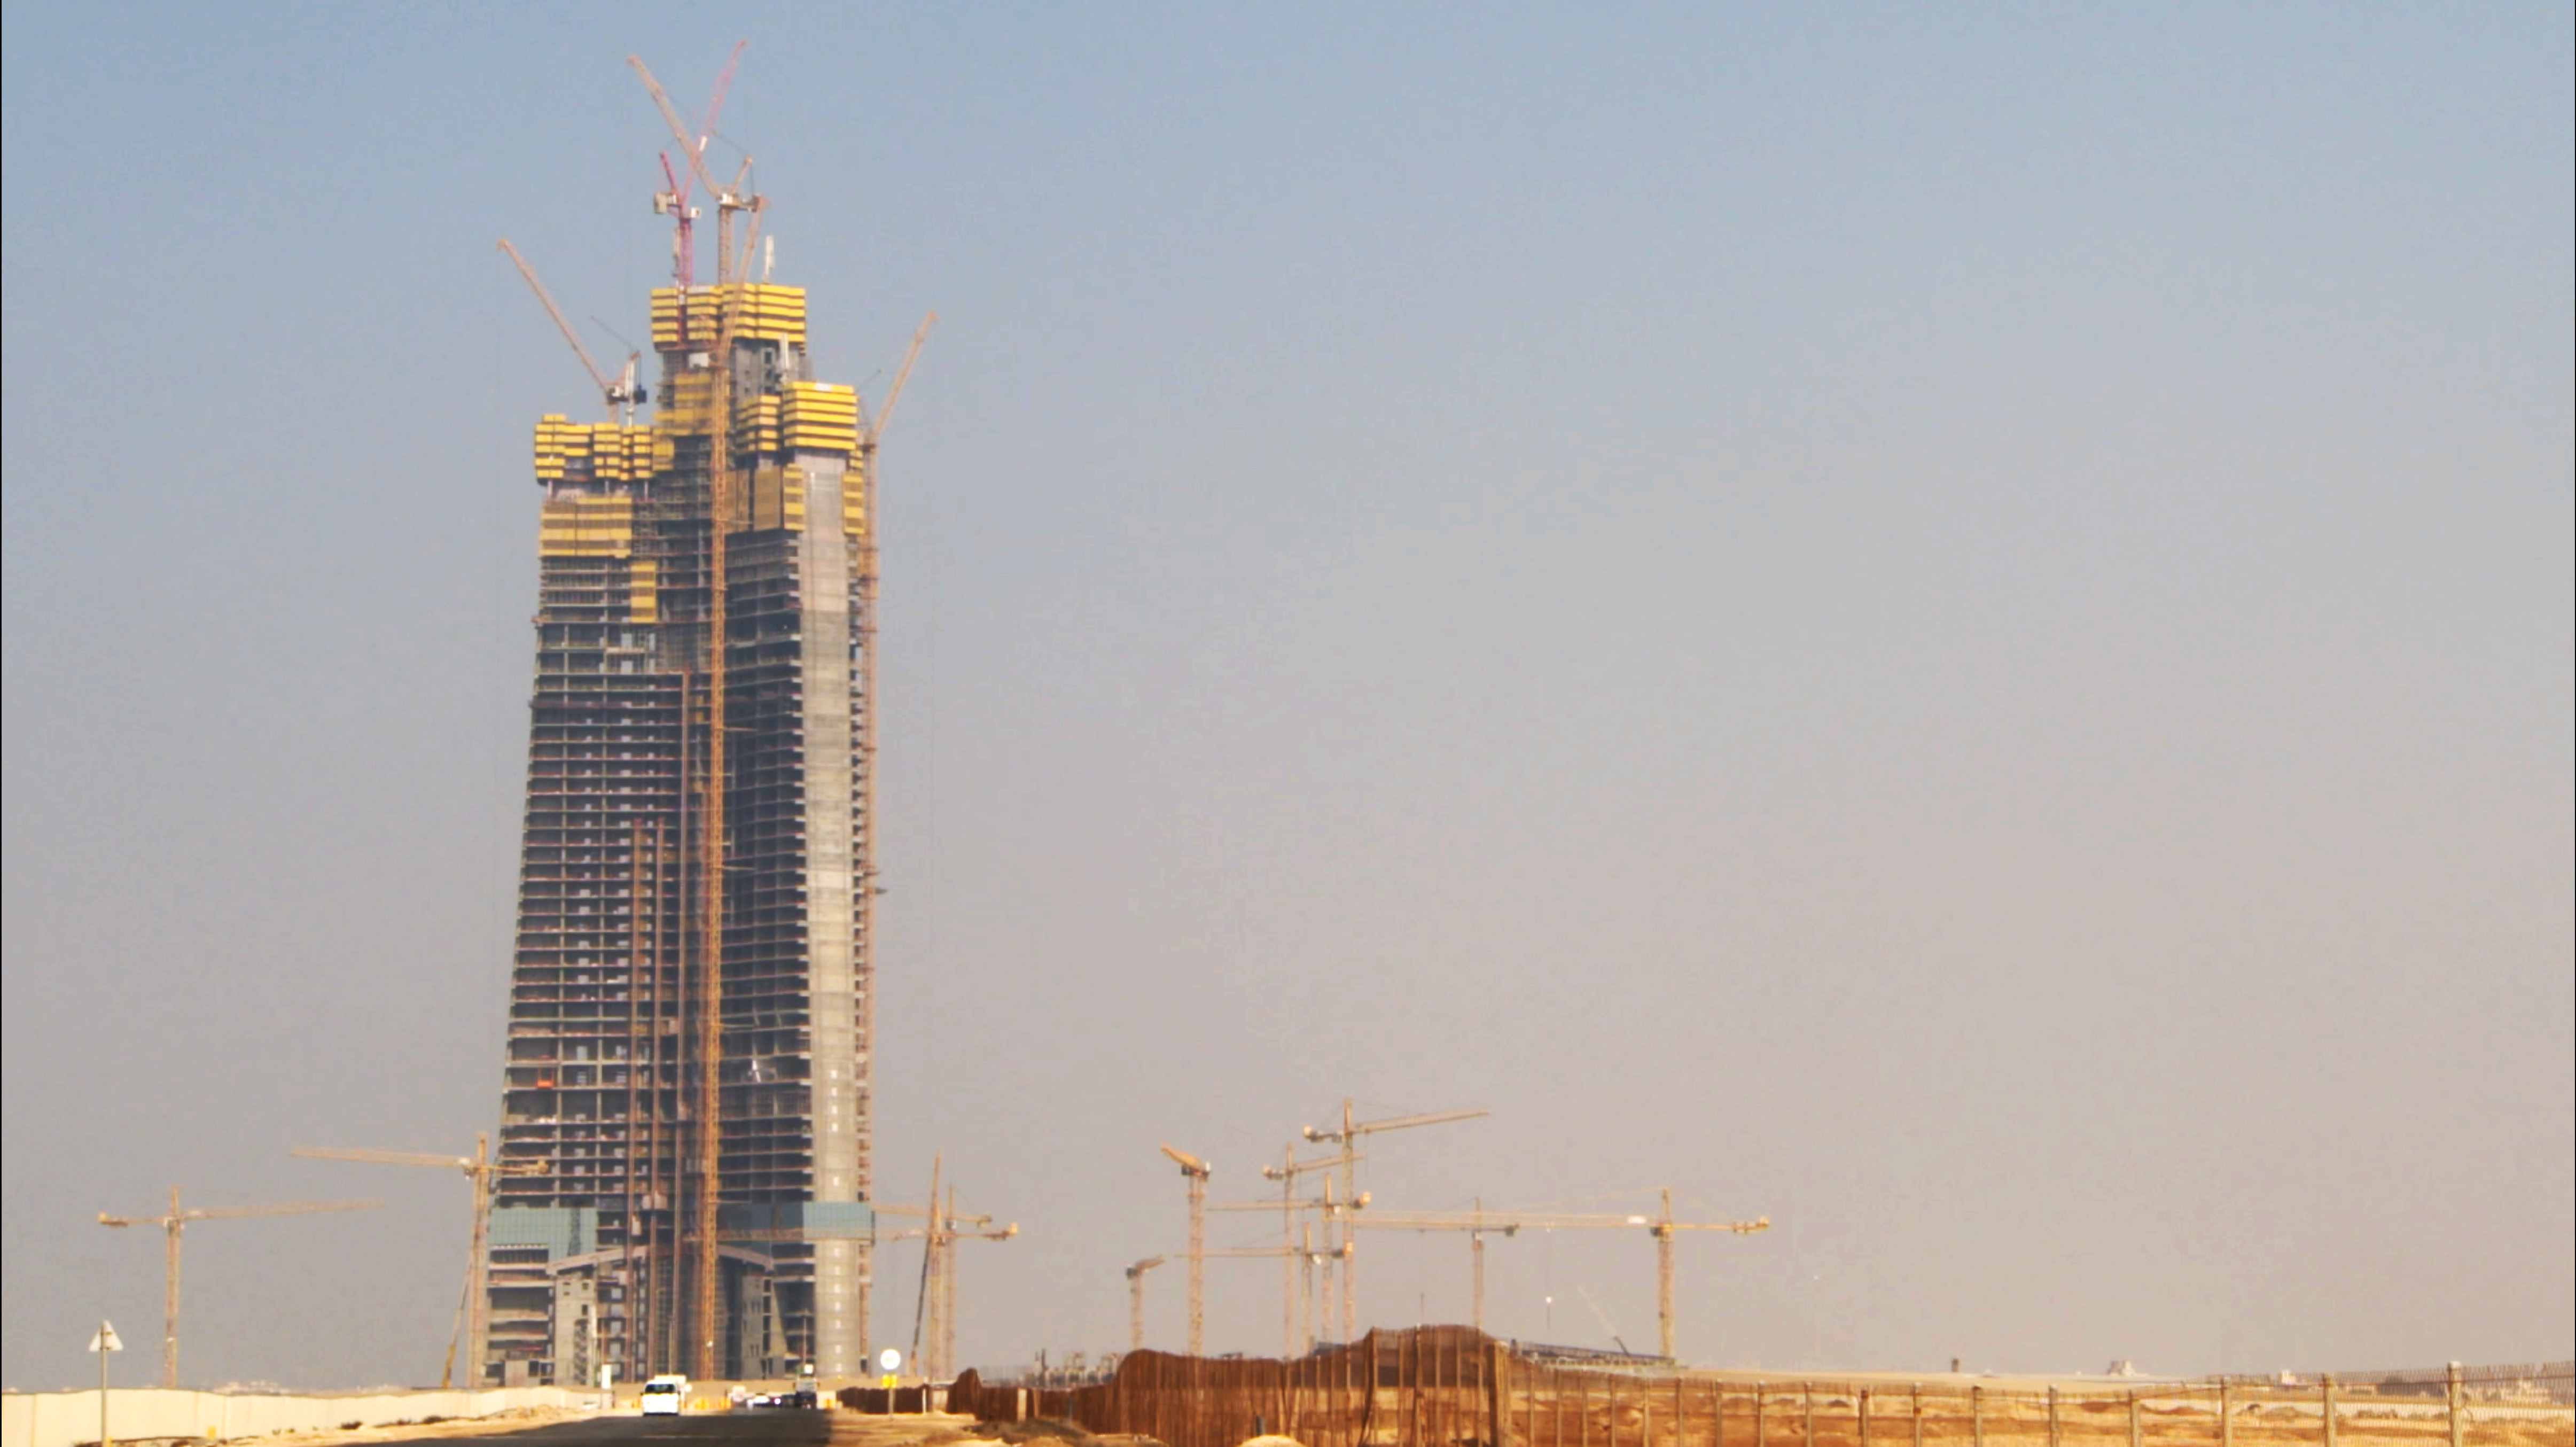 The tallest building in the world, Jeddah Tower, is set to